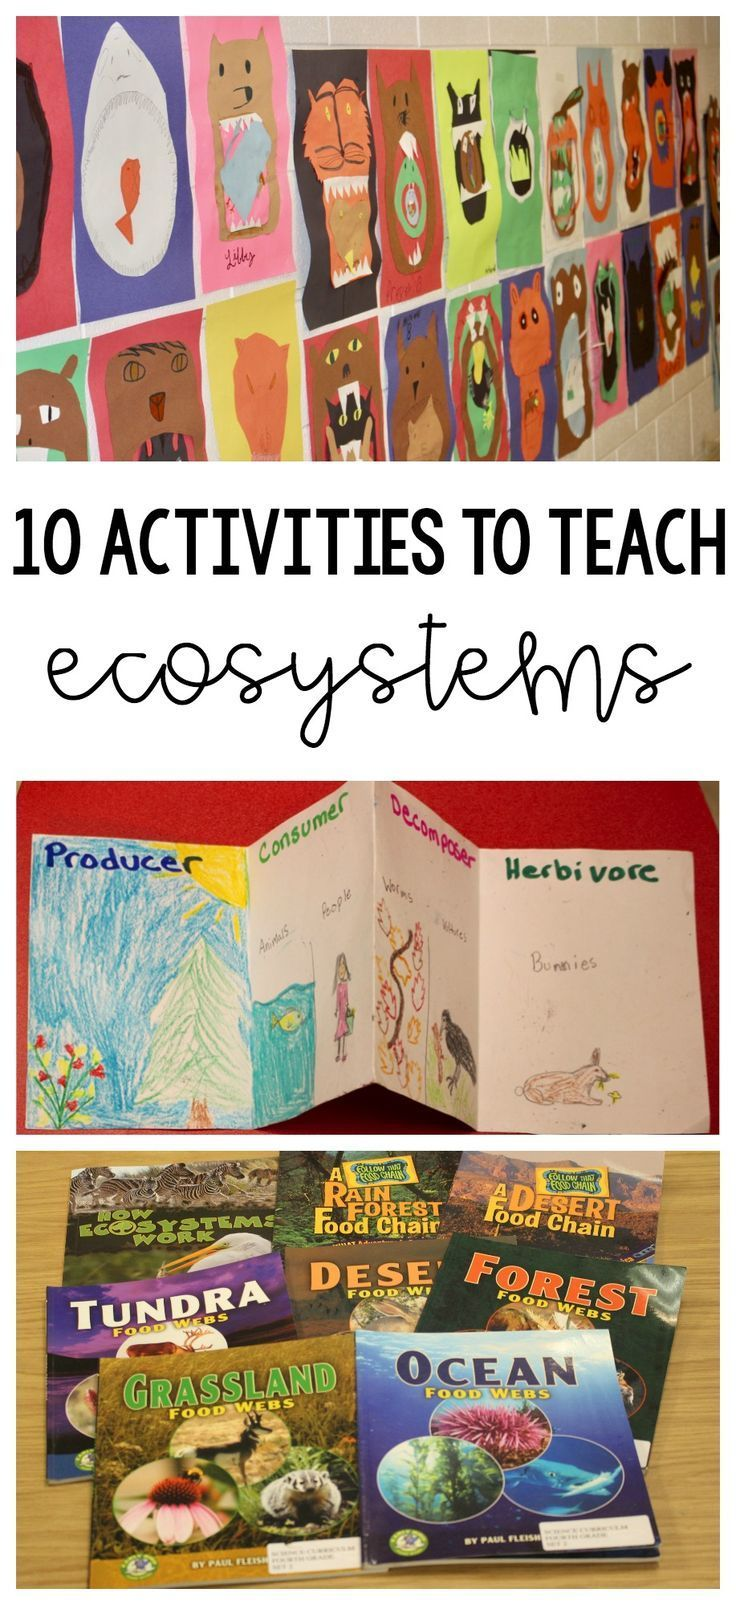 10 Activities to Teach Ecosystems | Science Resources